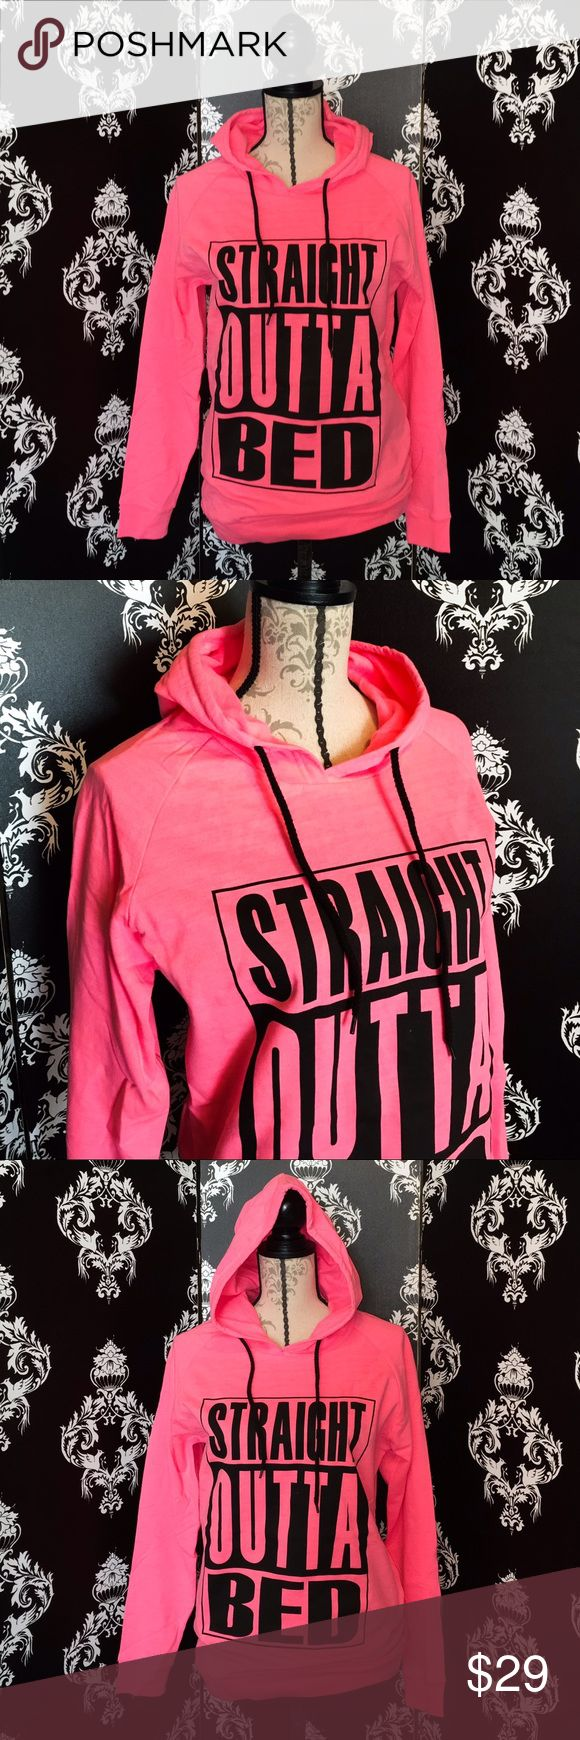 """NEW! Straight Outta Bed Hooded Sweatshirt! This Hoody is so cute with the Hot Pink color and black writing that says """"Straight Outta Bed"""" it's a super soft & light material. Brand new! Smoke free home. Tops Sweatshirts & Hoodies"""